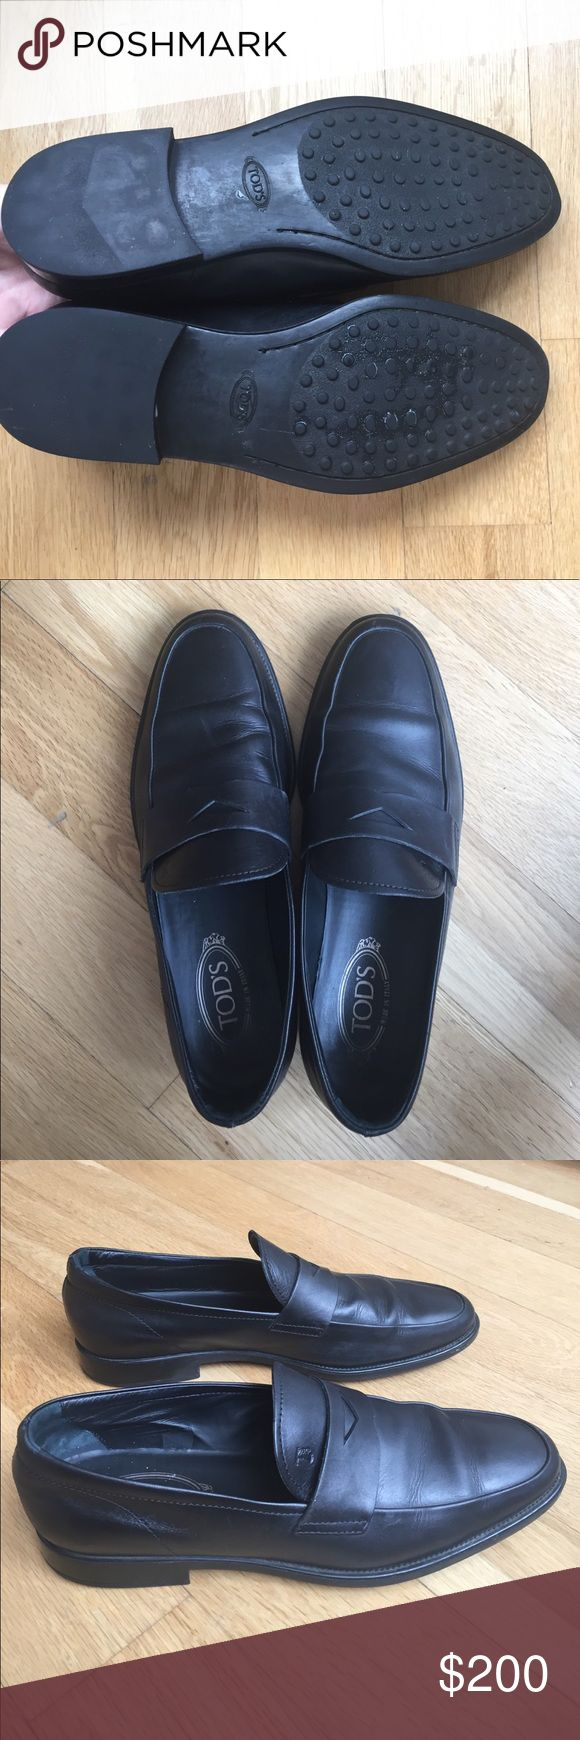 Tod's Black Leather Loafers Black leather loafers, Tods size 7.5 (8.5 US) Tod's Shoes Loafers & Slip-Ons